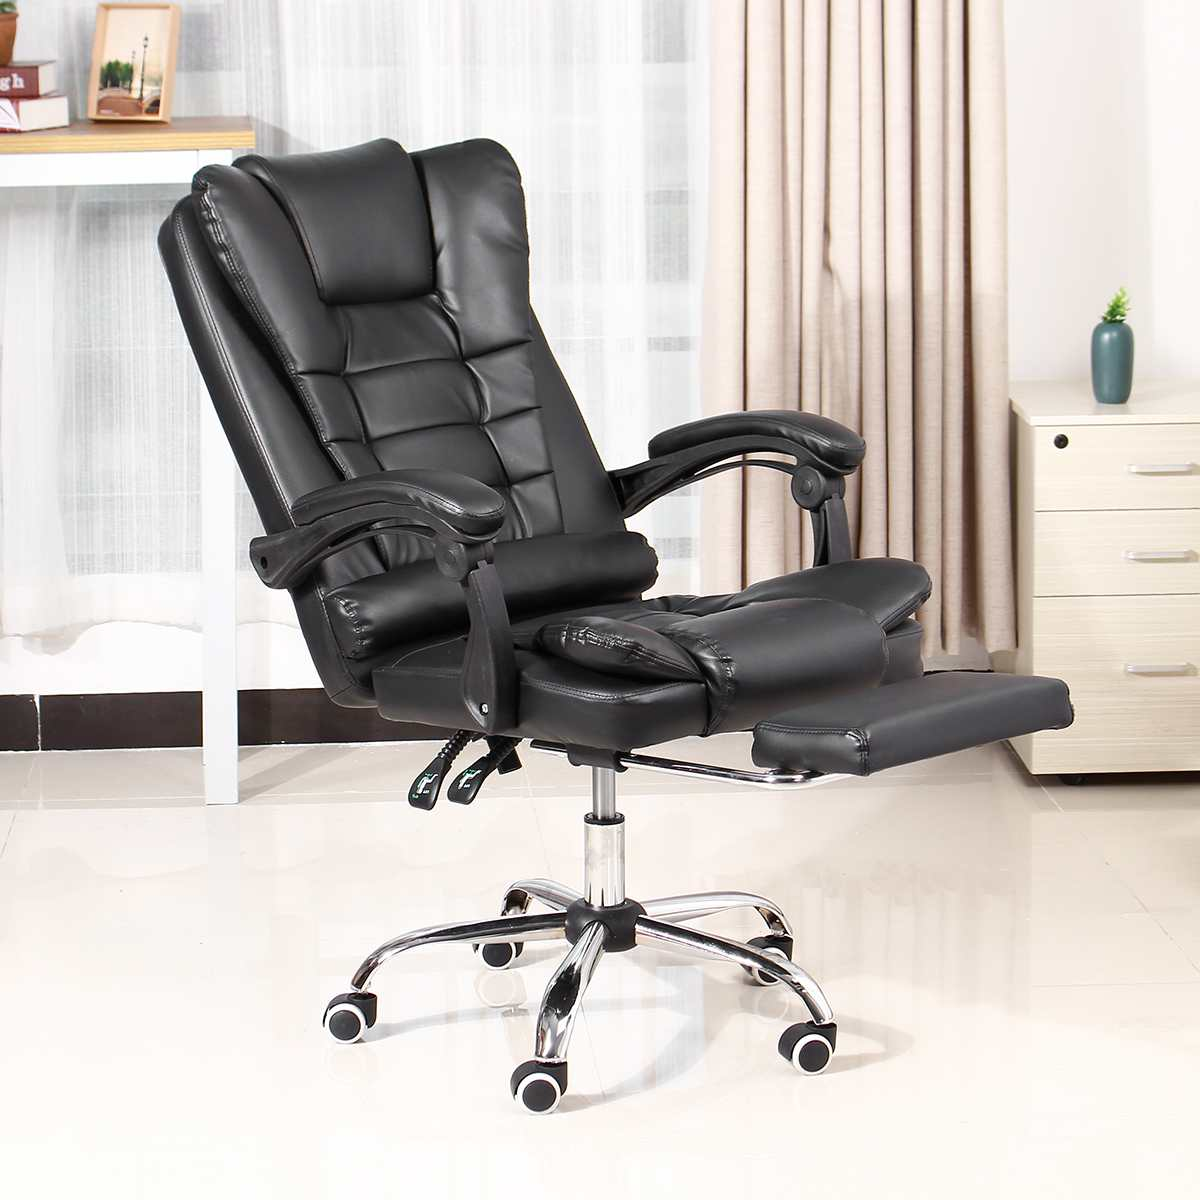 H4a3ed6d7e9294336b9f782a44bcaac46E - Office Chair WCG Computer Gaming Chair Reclining Armchair with Footrest Internet Cafe Gamer Chair Office Furniture Pink Chair